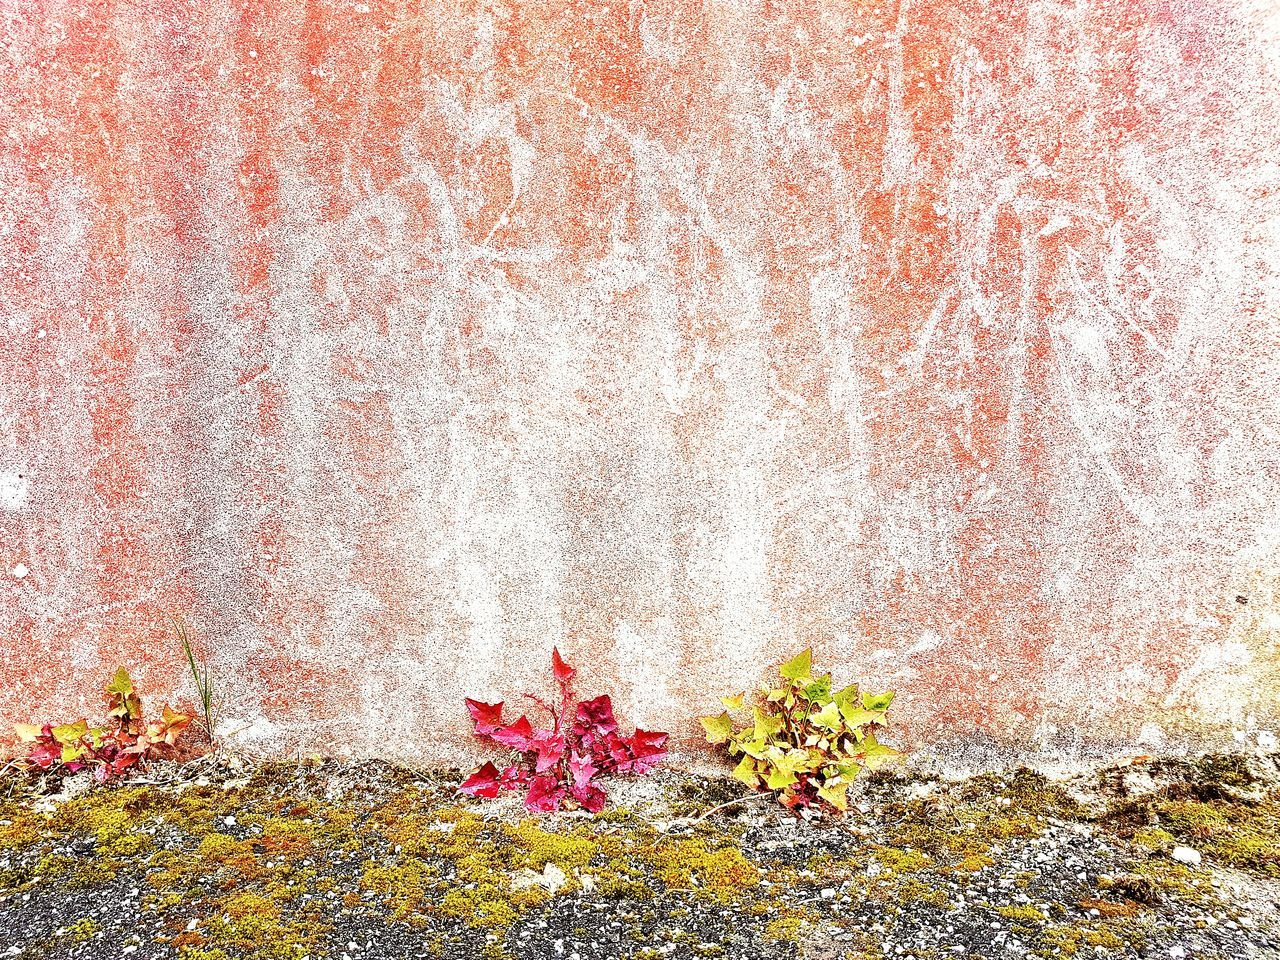 We grow together No People Backgrounds Plant Wall Textures Wallporn Wall Murals Concretewall Flowers,Plants & Garden